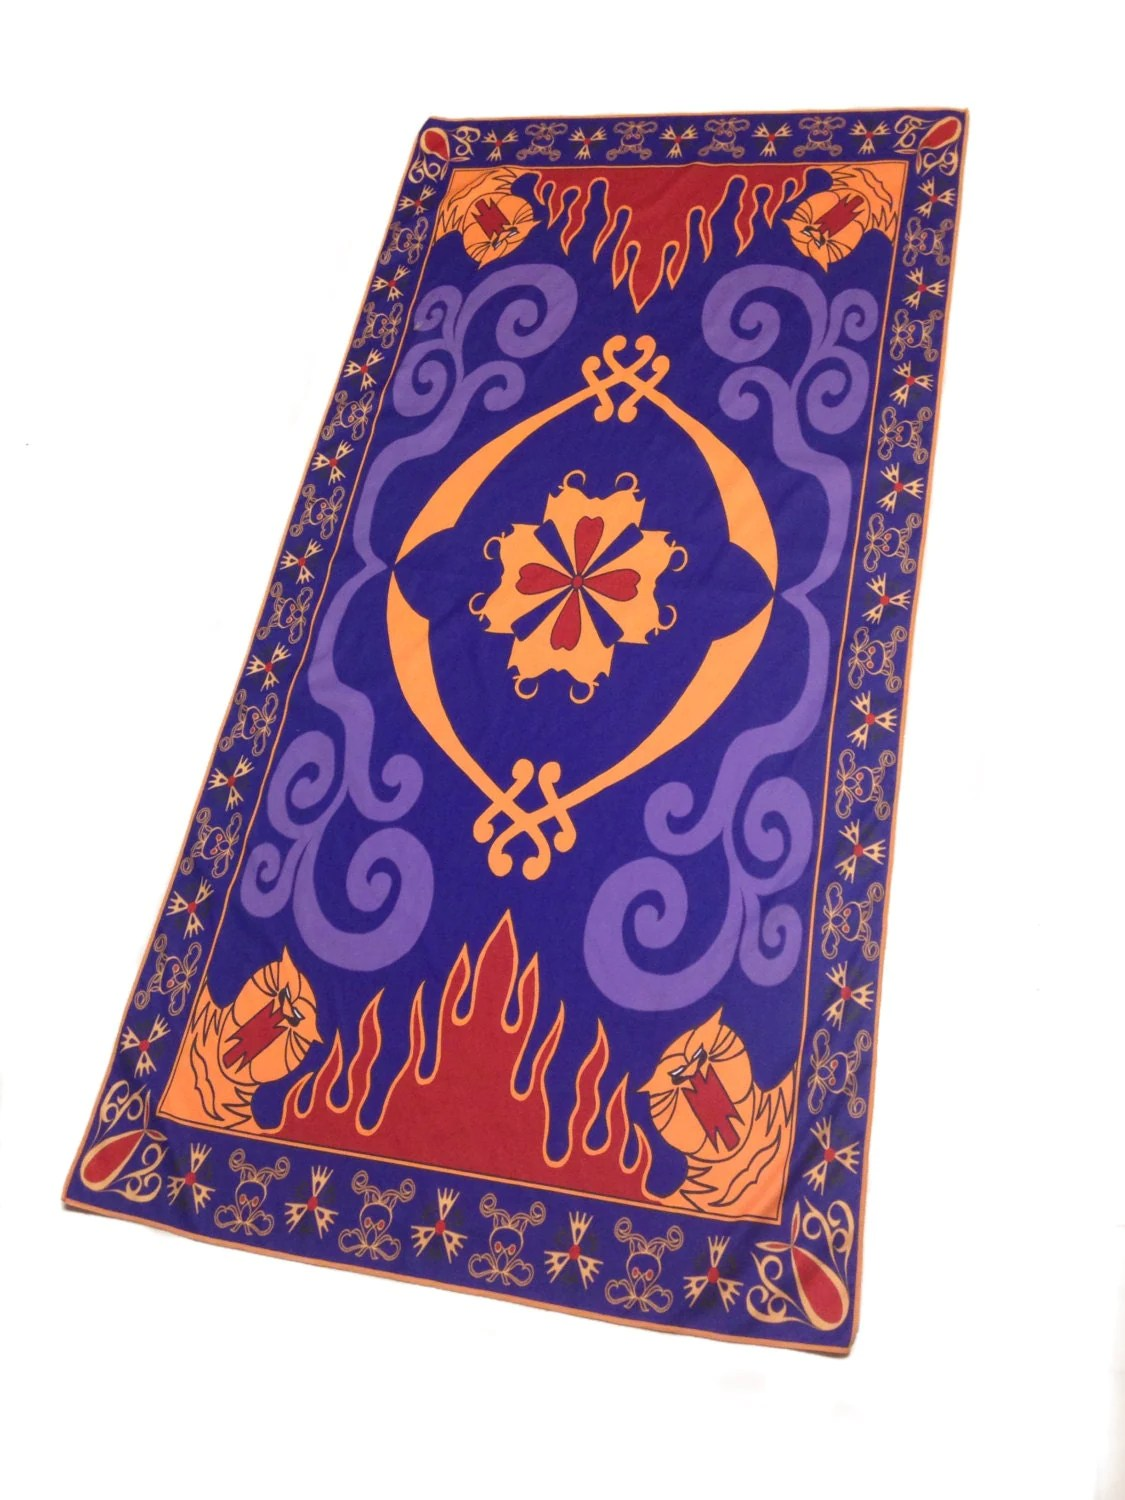 Fliegender Teppich Amazon Aladdin Magic Carpet Inspired Towel